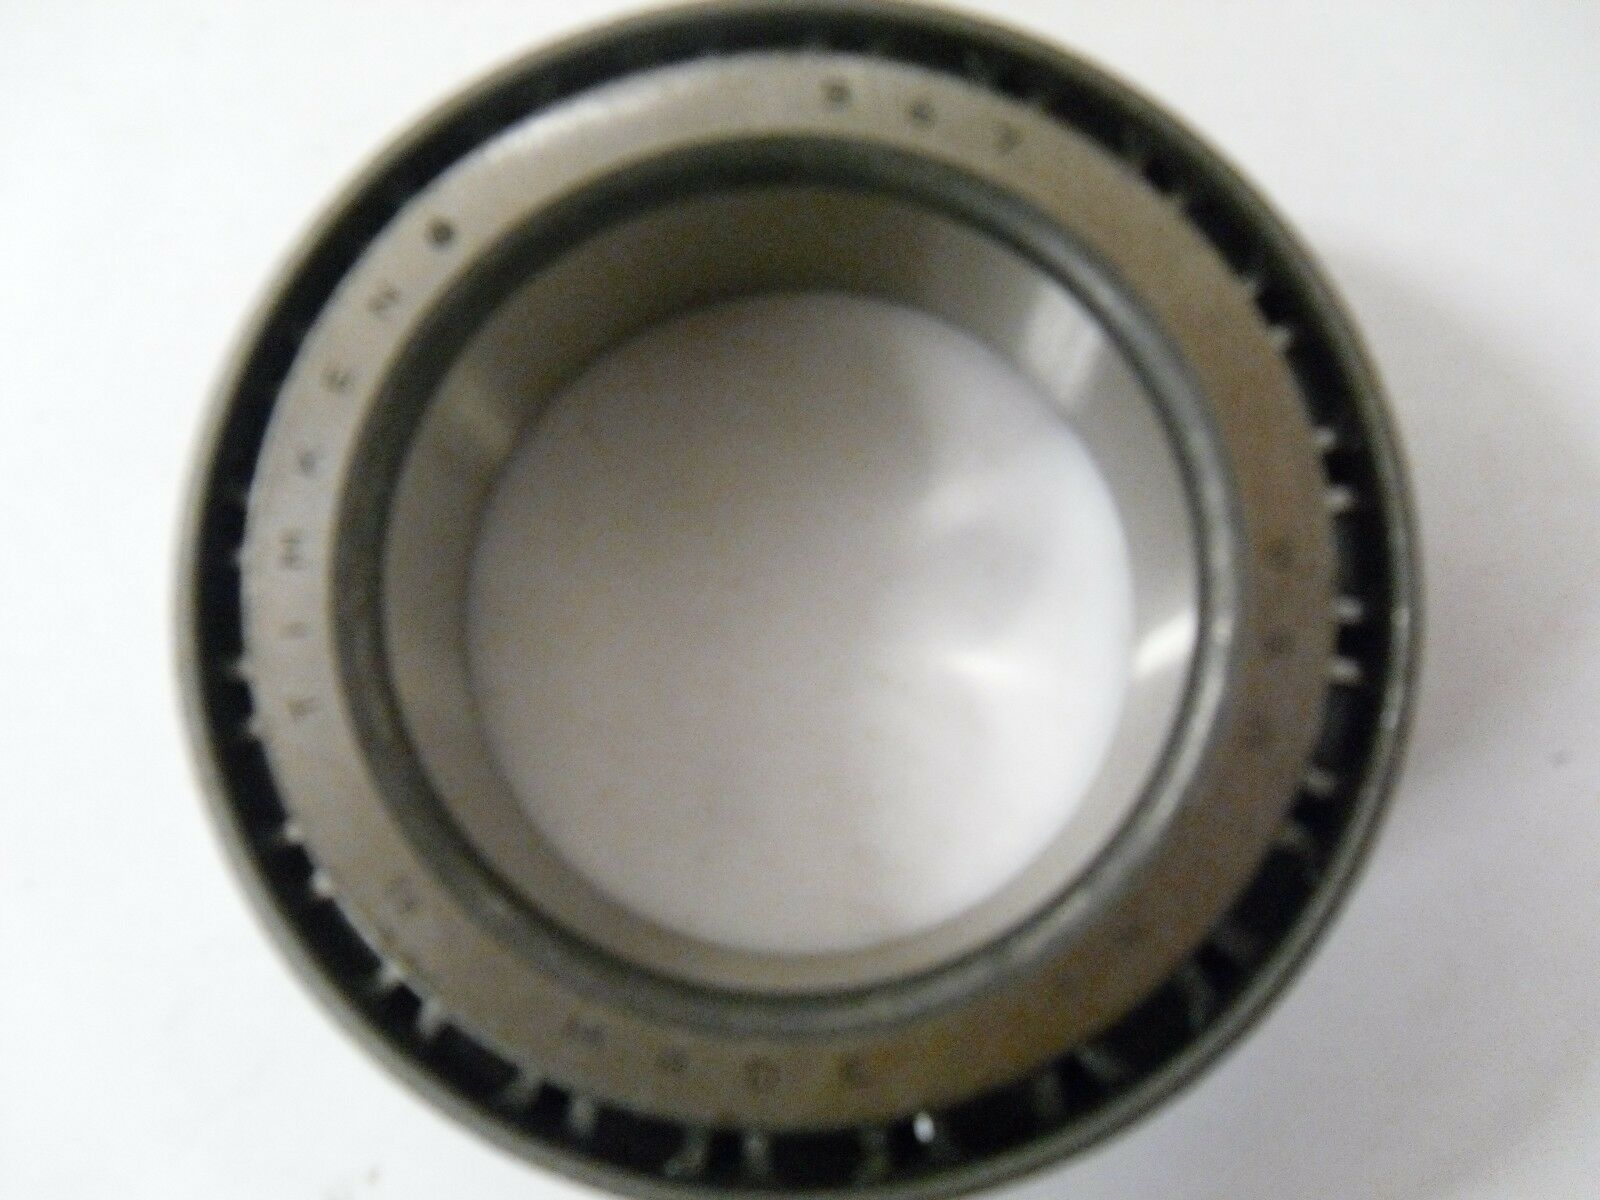 Primary image for TIMKEN 567 CONE TAPERED ROLLER BEARING NEW OLD STOCK